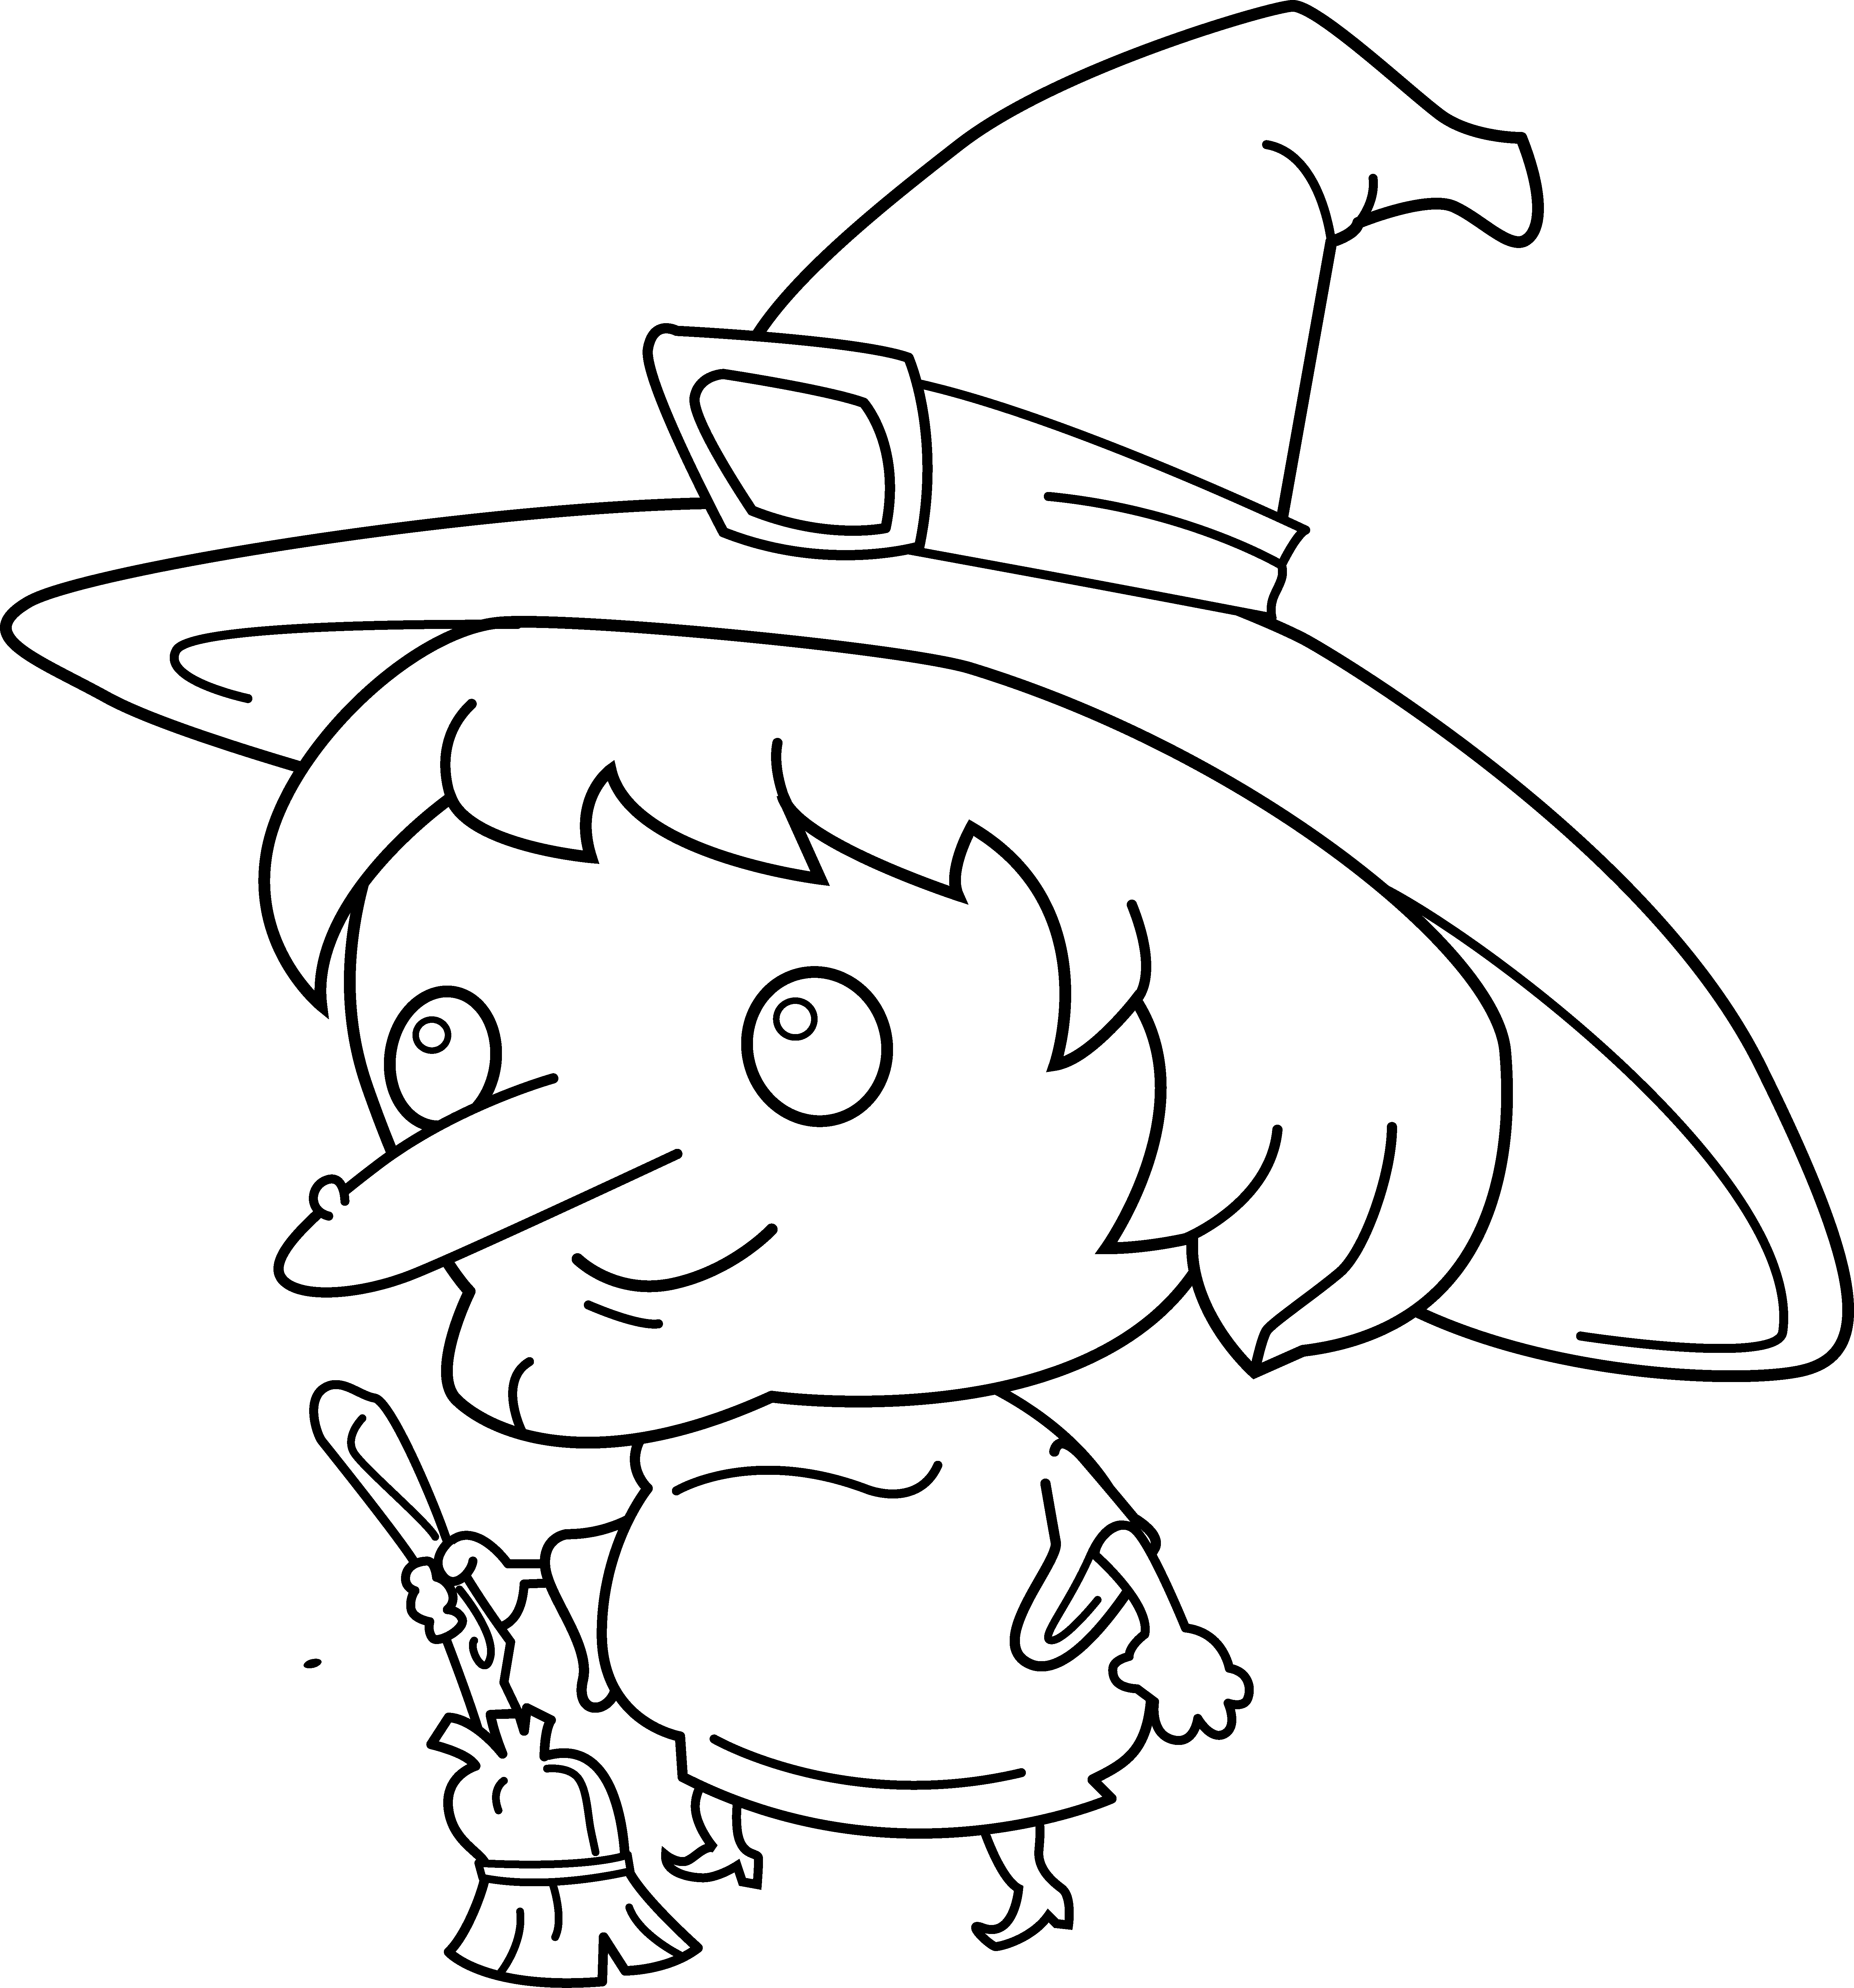 witch hat clip art coloring pages cute witch coloring page free clip art - Witch Coloring Pages Free